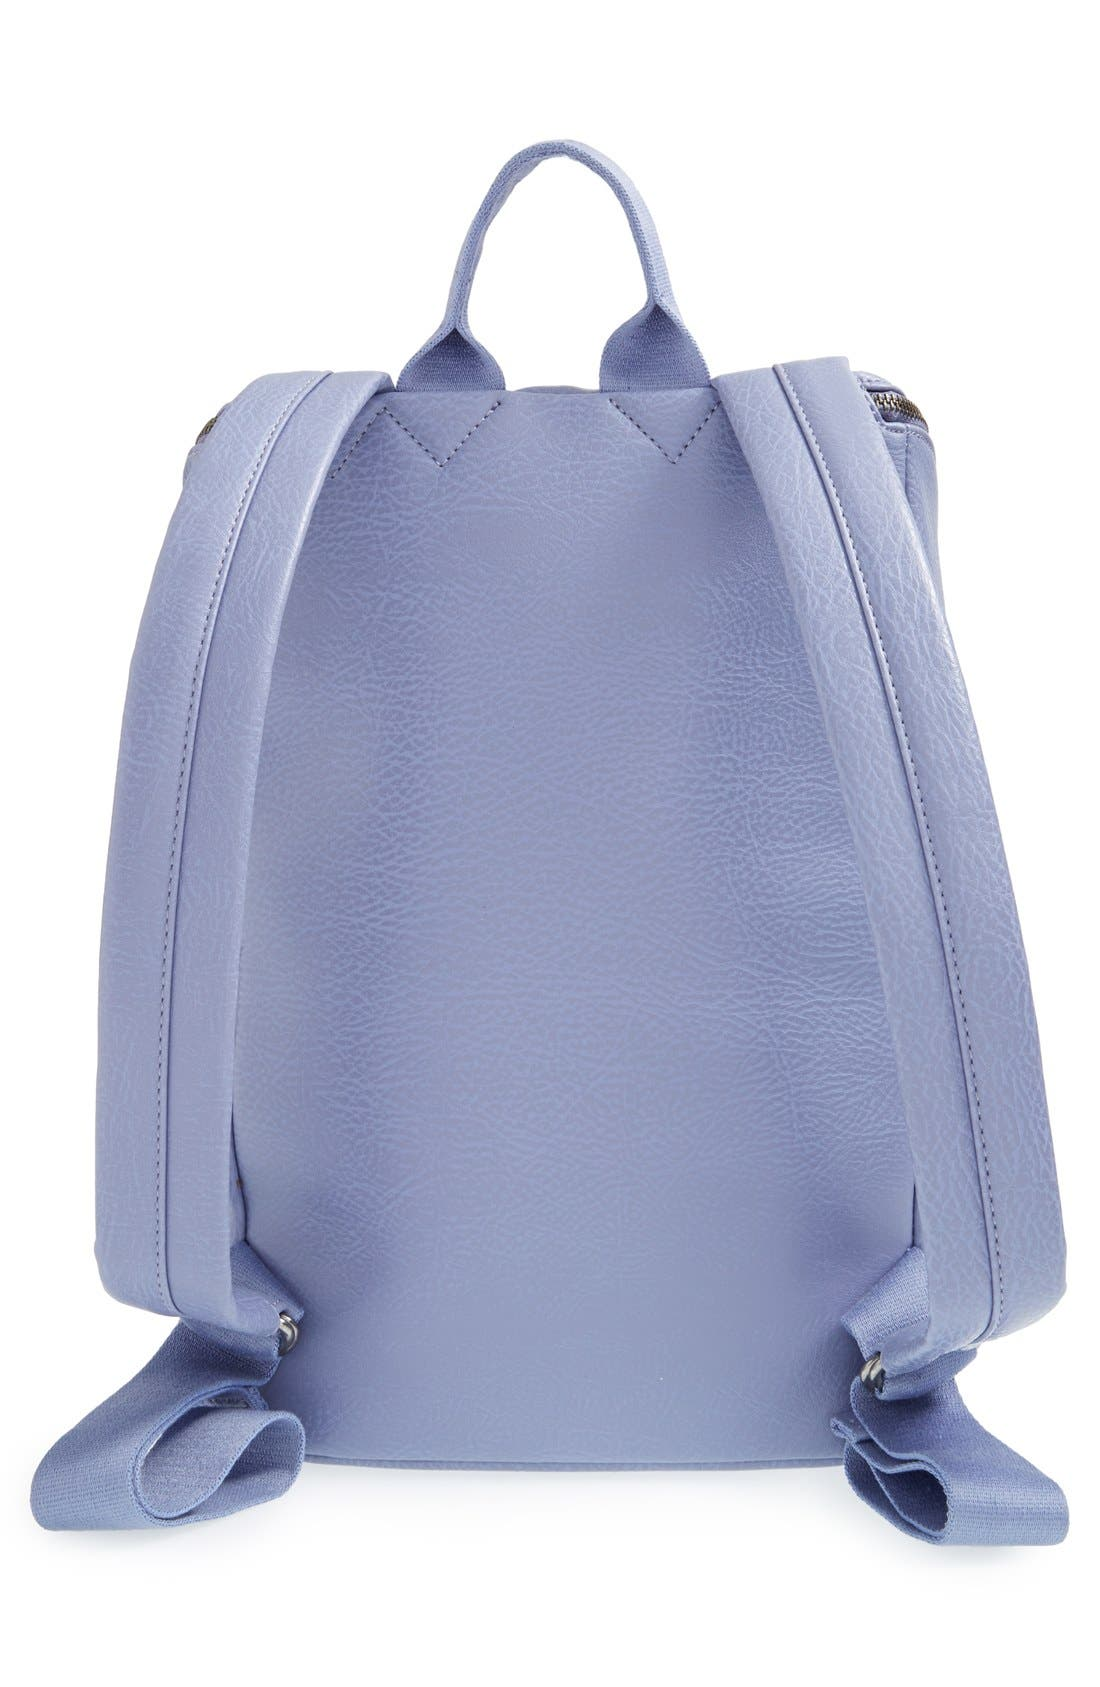 'Brave' Faux Leather Backpack,                             Alternate thumbnail 59, color,